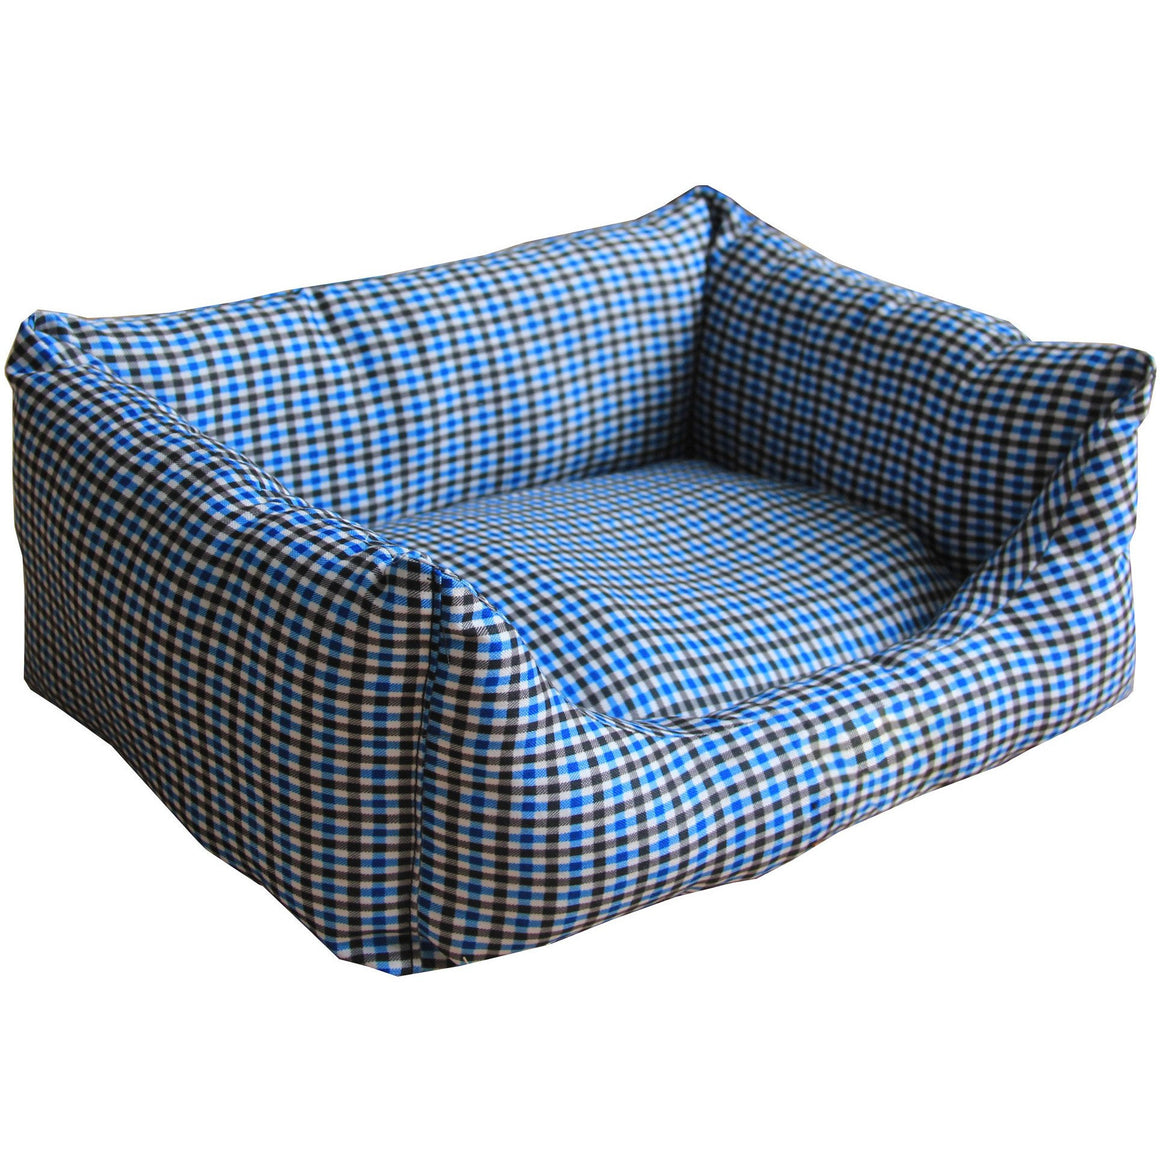 Anti-Bacterial/Water Resistant Rectangular Dog Bed - X-Small - Blue Plaid